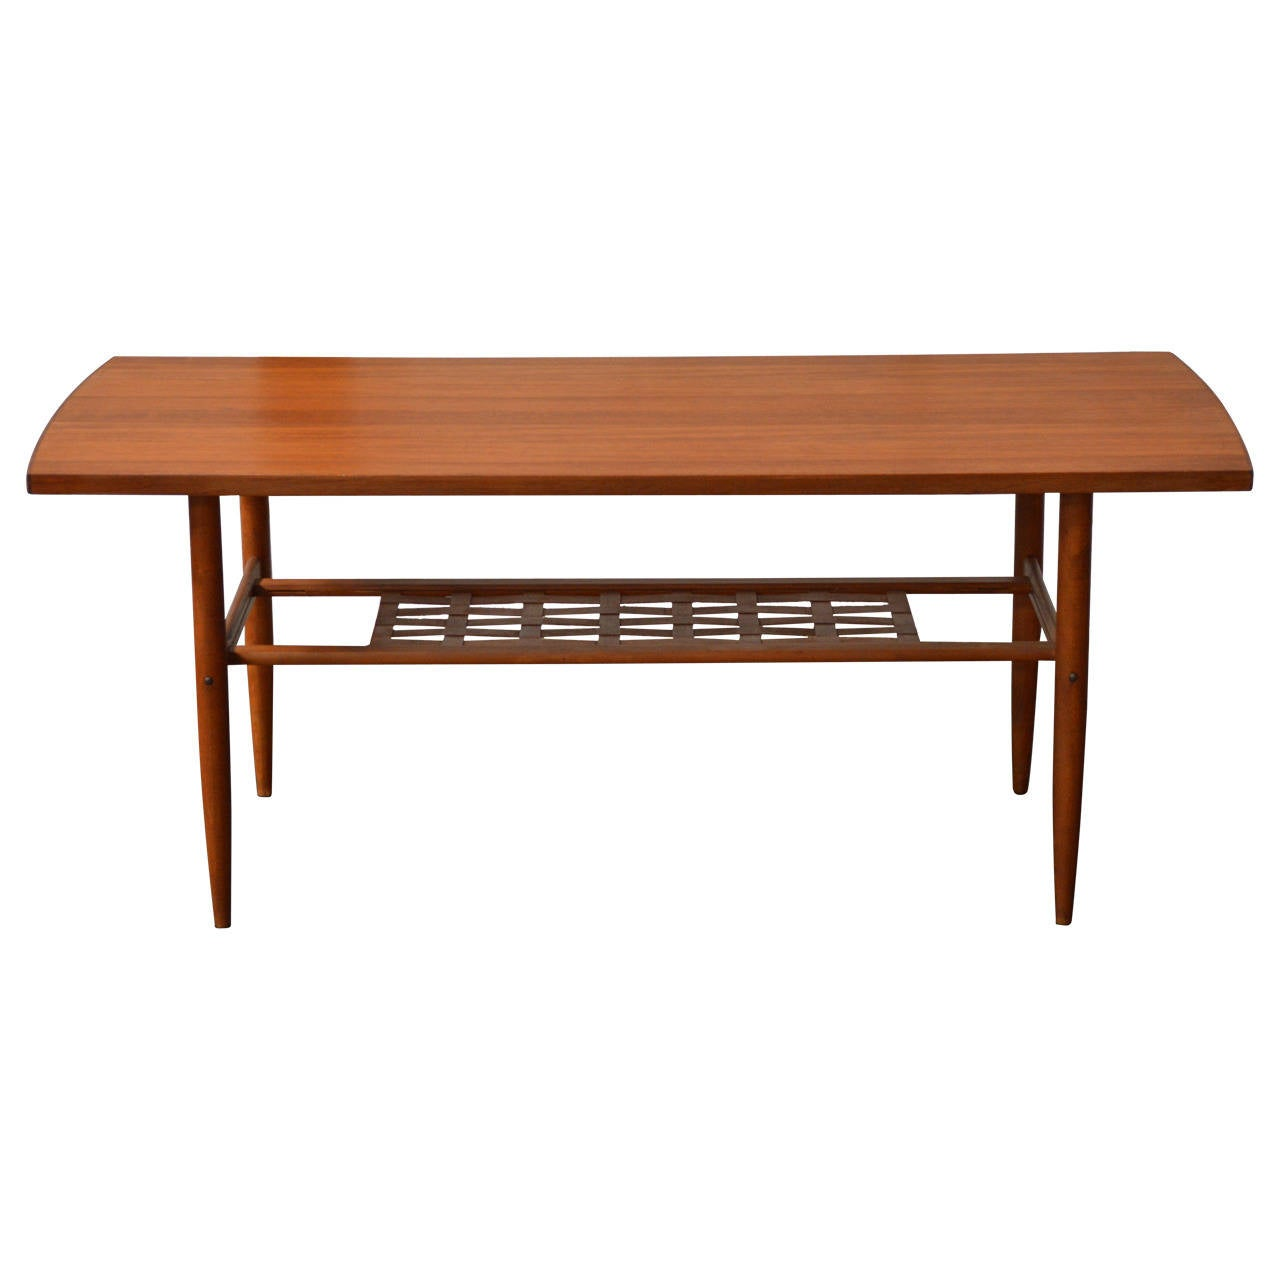 Swedish Mid Century Furniture Swedish Mid Century Teak Coffee Table